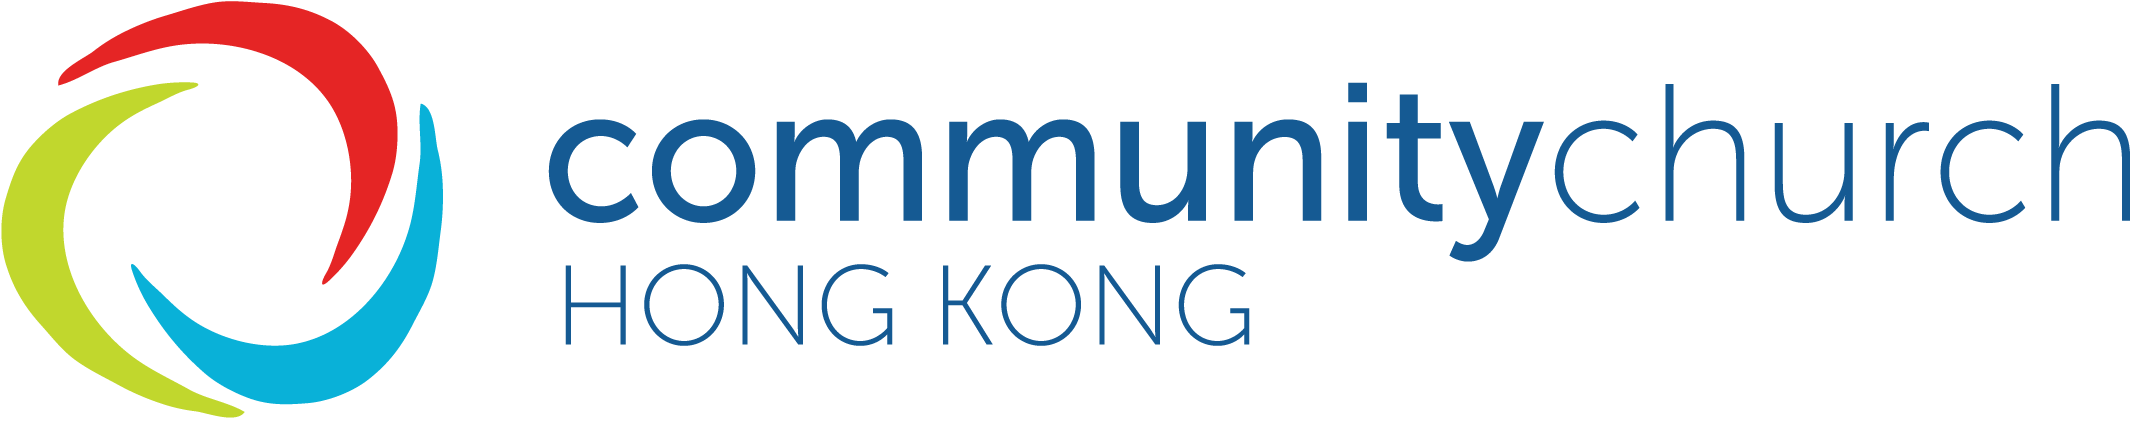 Community Church Hong Kong